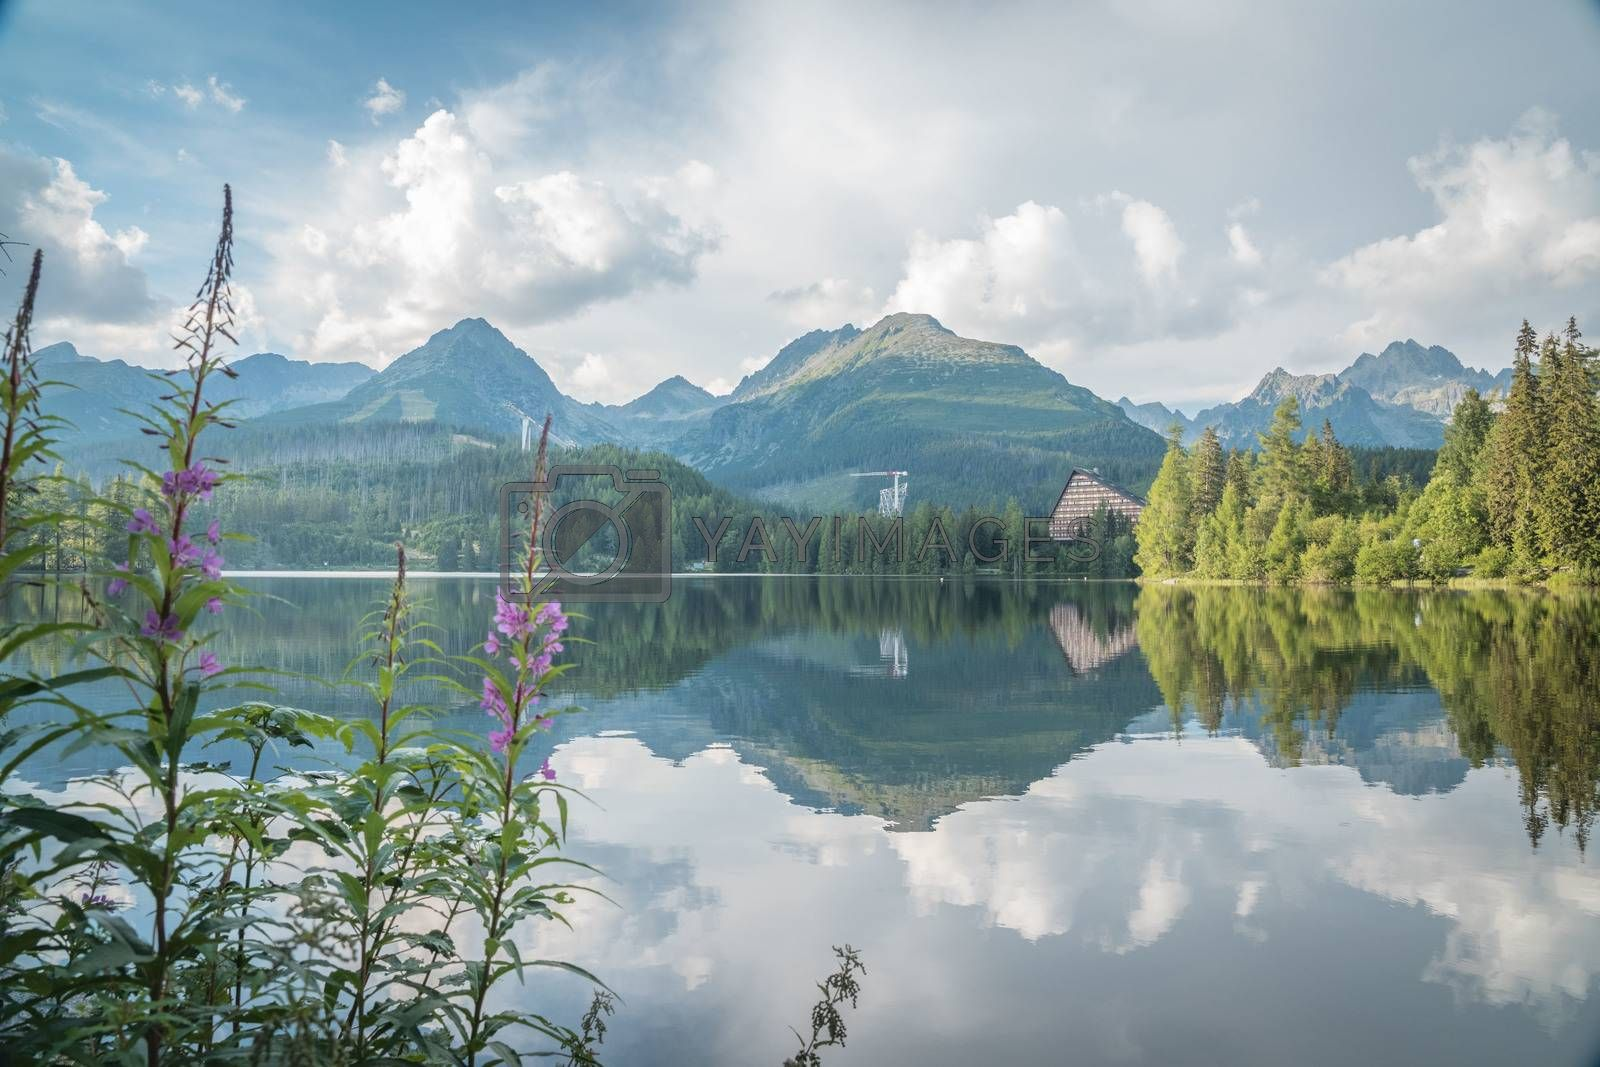 Royalty free image of Mountain lake in National Park High Tatras. Strbske pleso, Slovakia, Europe. Late summer evening at lakeside. by petrsvoboda91